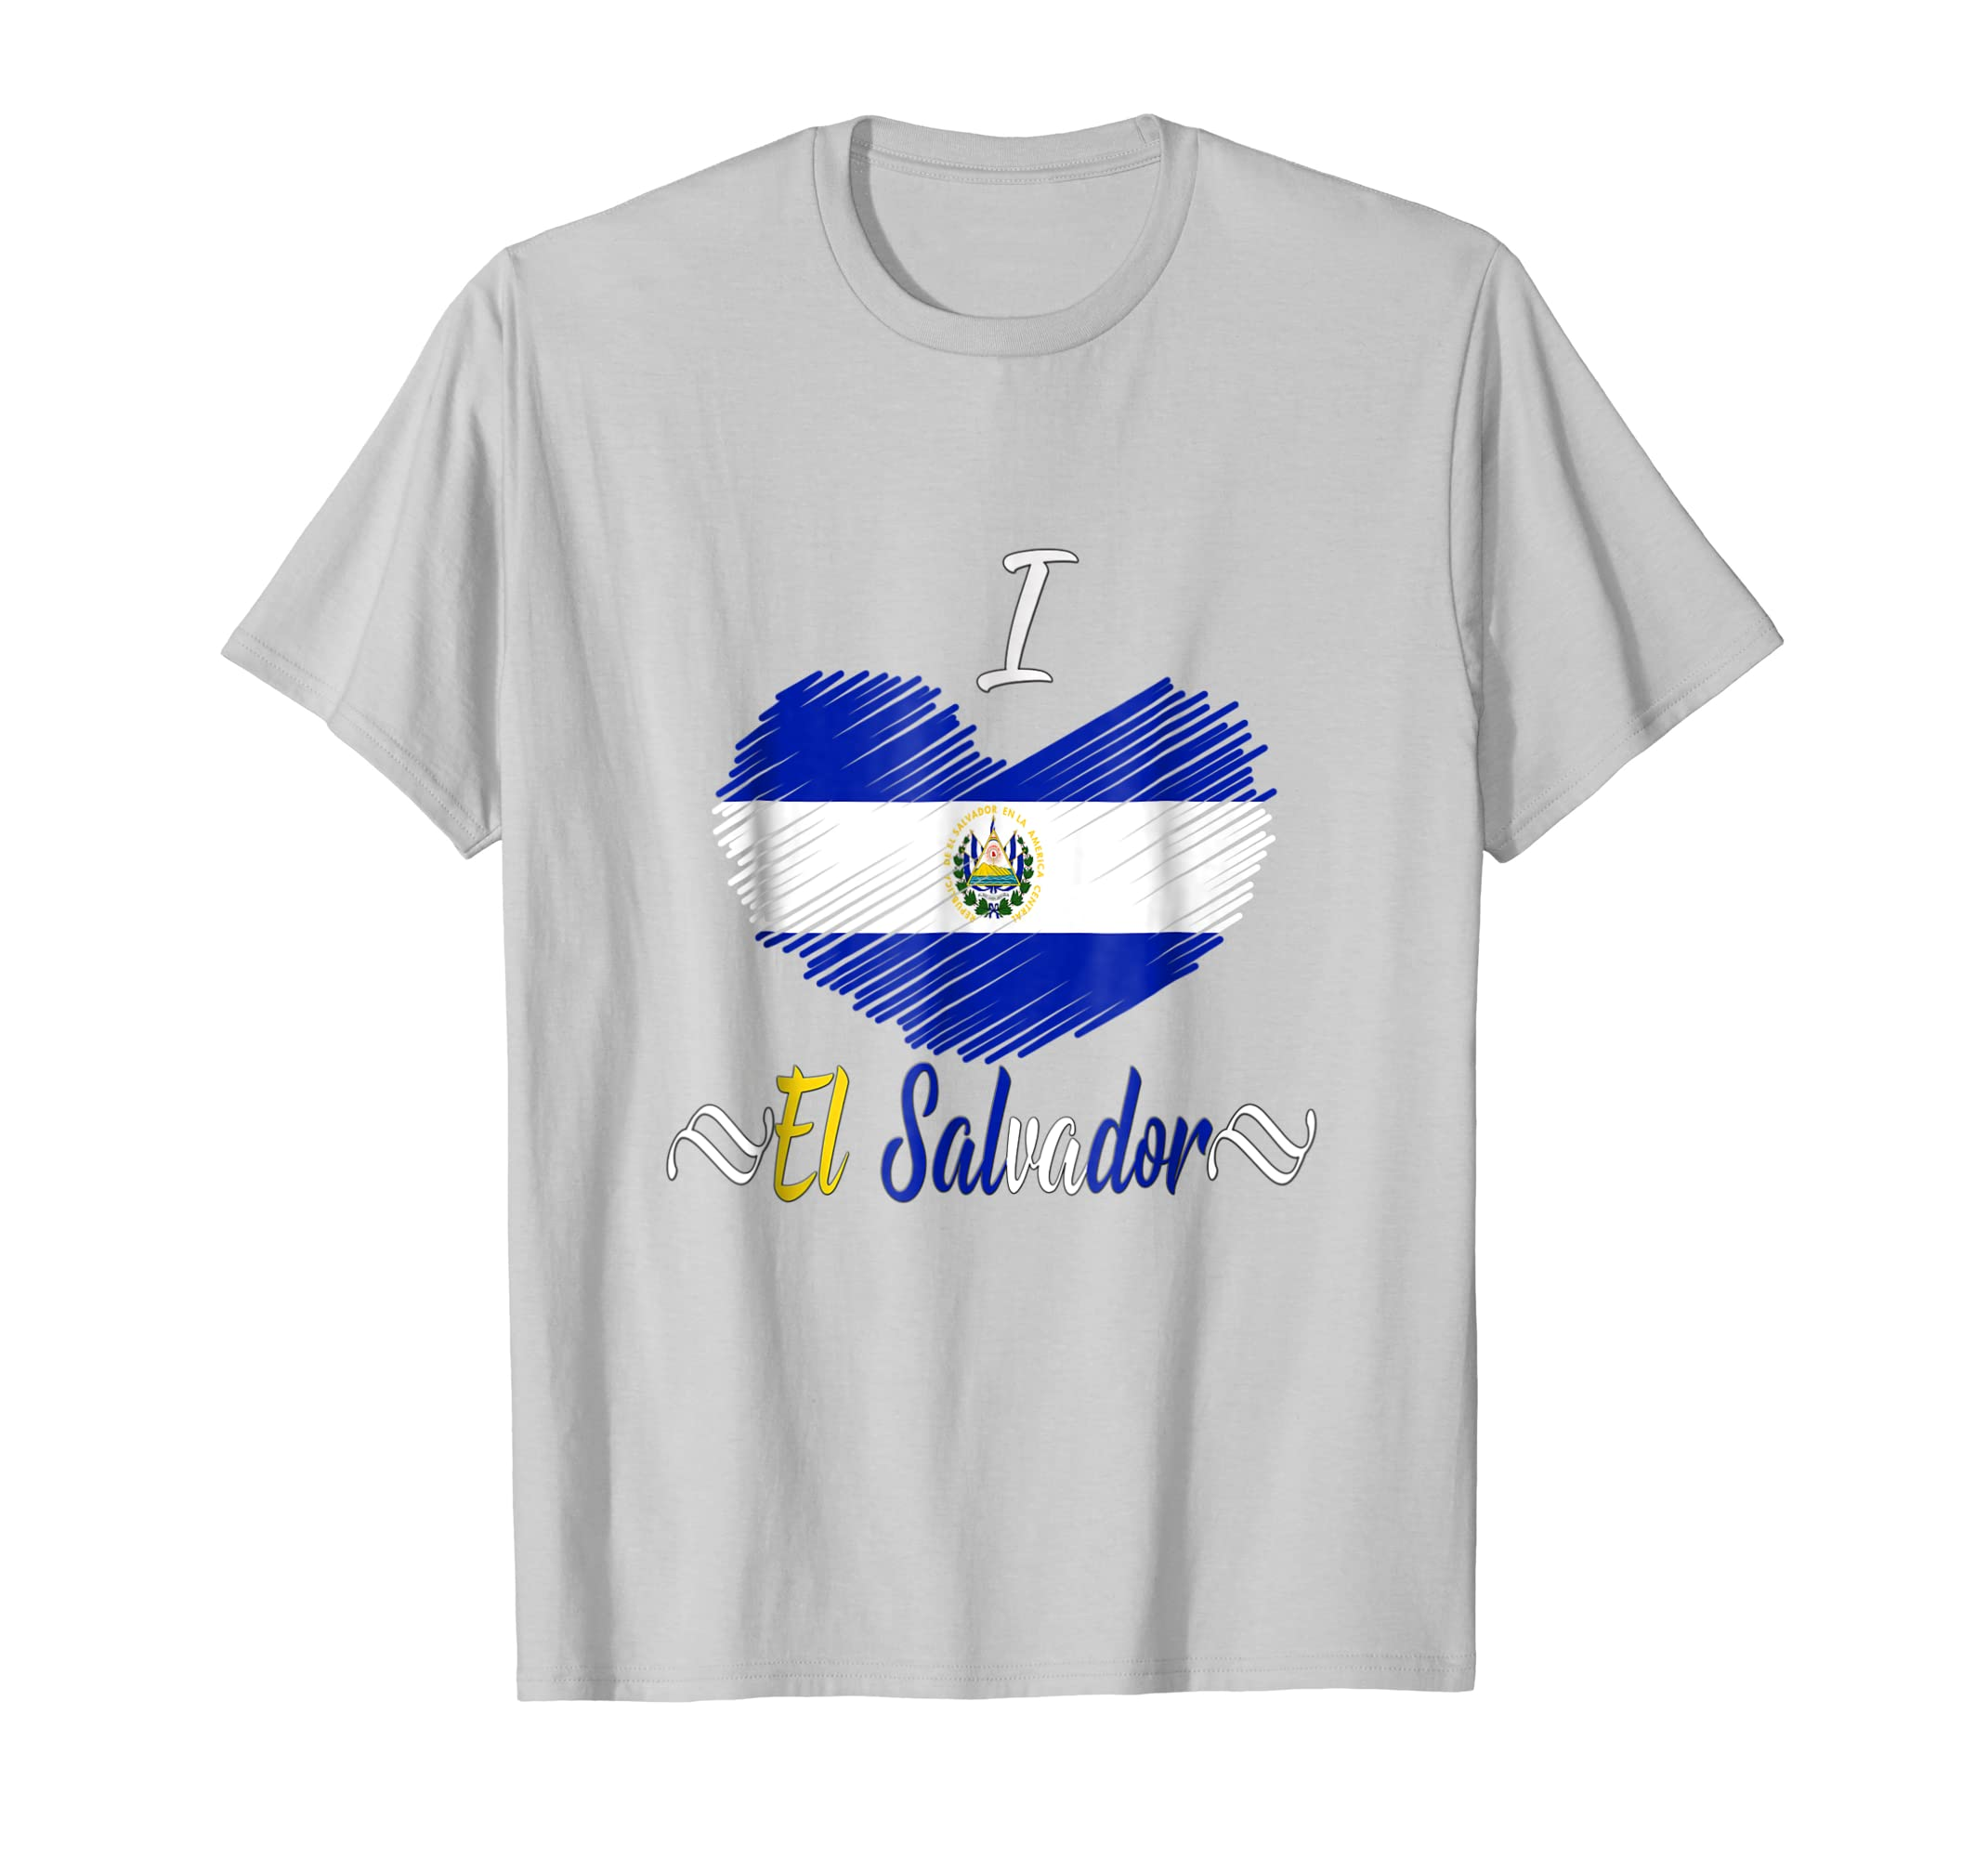 Amazon.com: Camiseta independencia El Salvador Tshirt Men Women Kids: Clothing